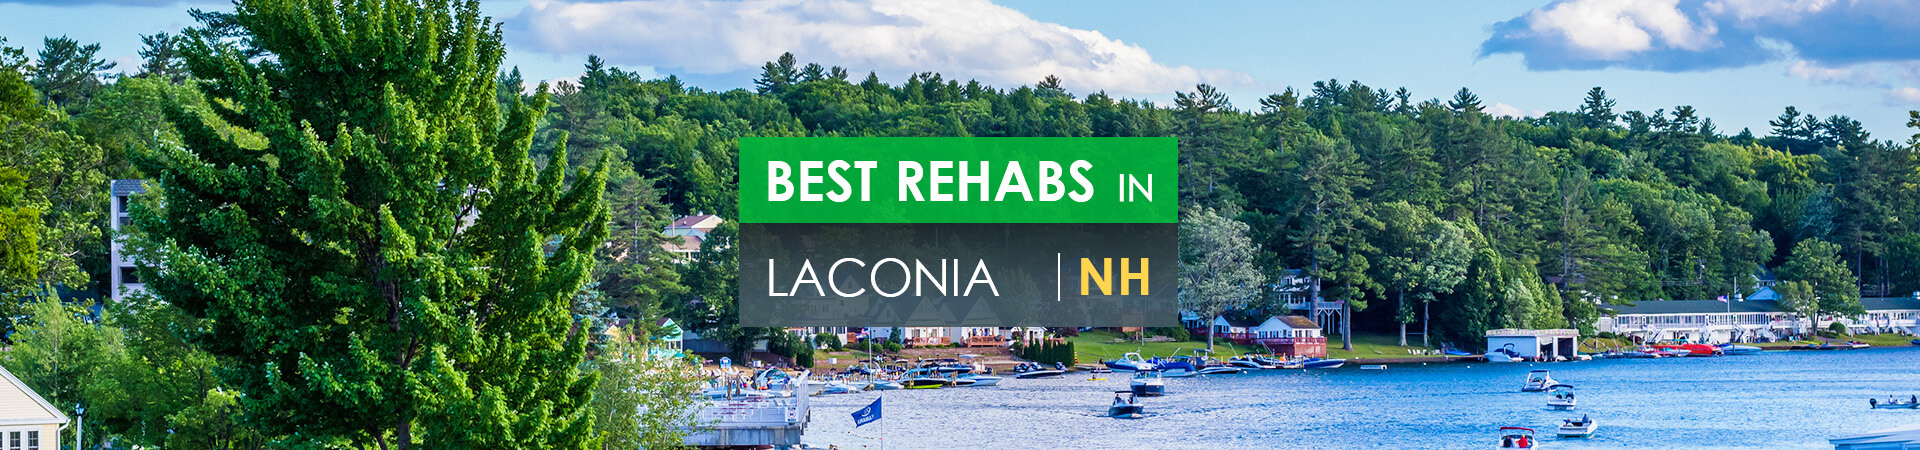 Best rehabs in Laconia, NH